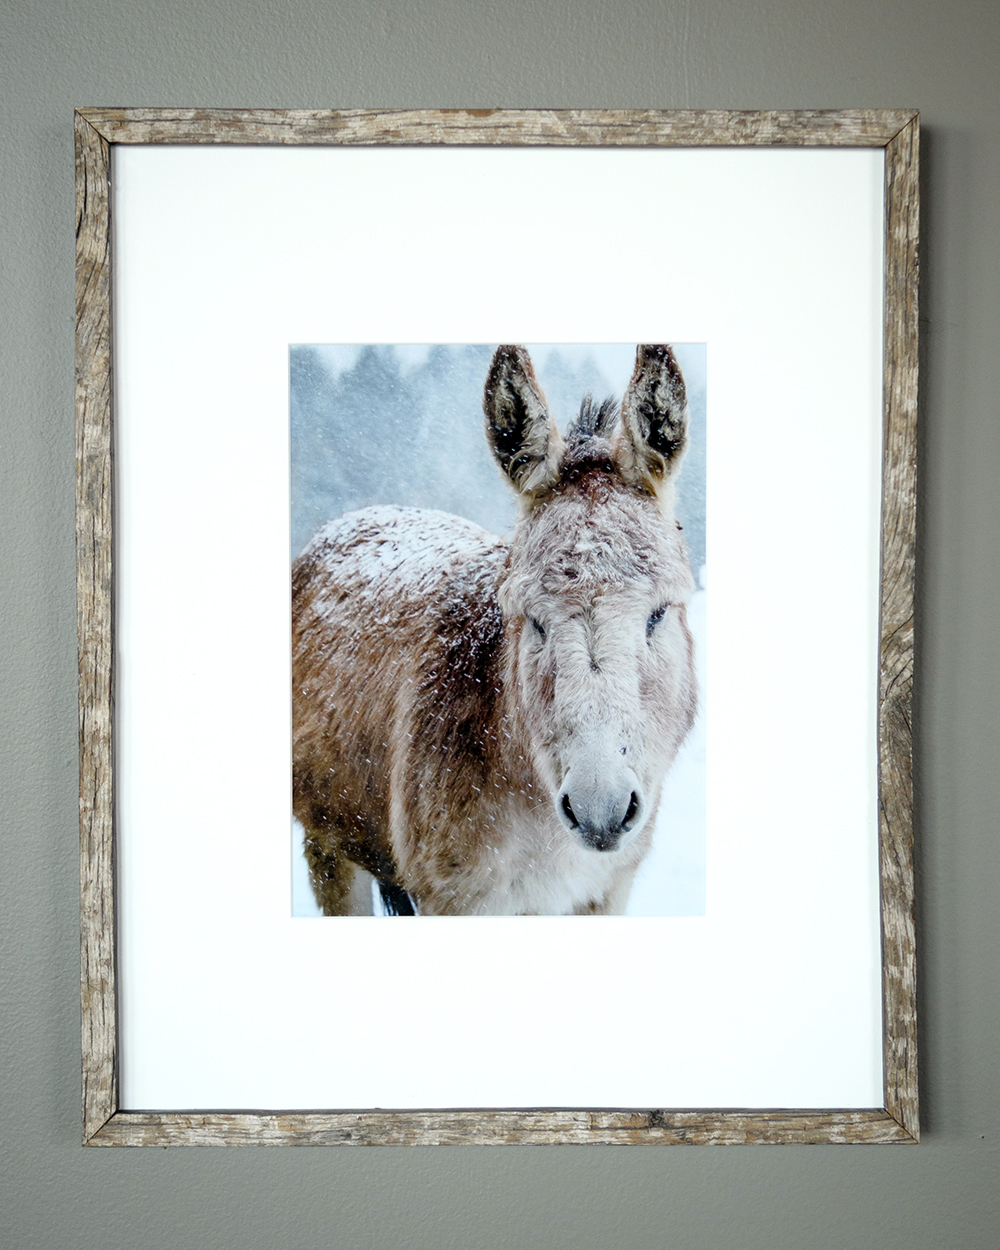 Light Donkey - North Star Sheep Farm, Windham (SOLD)